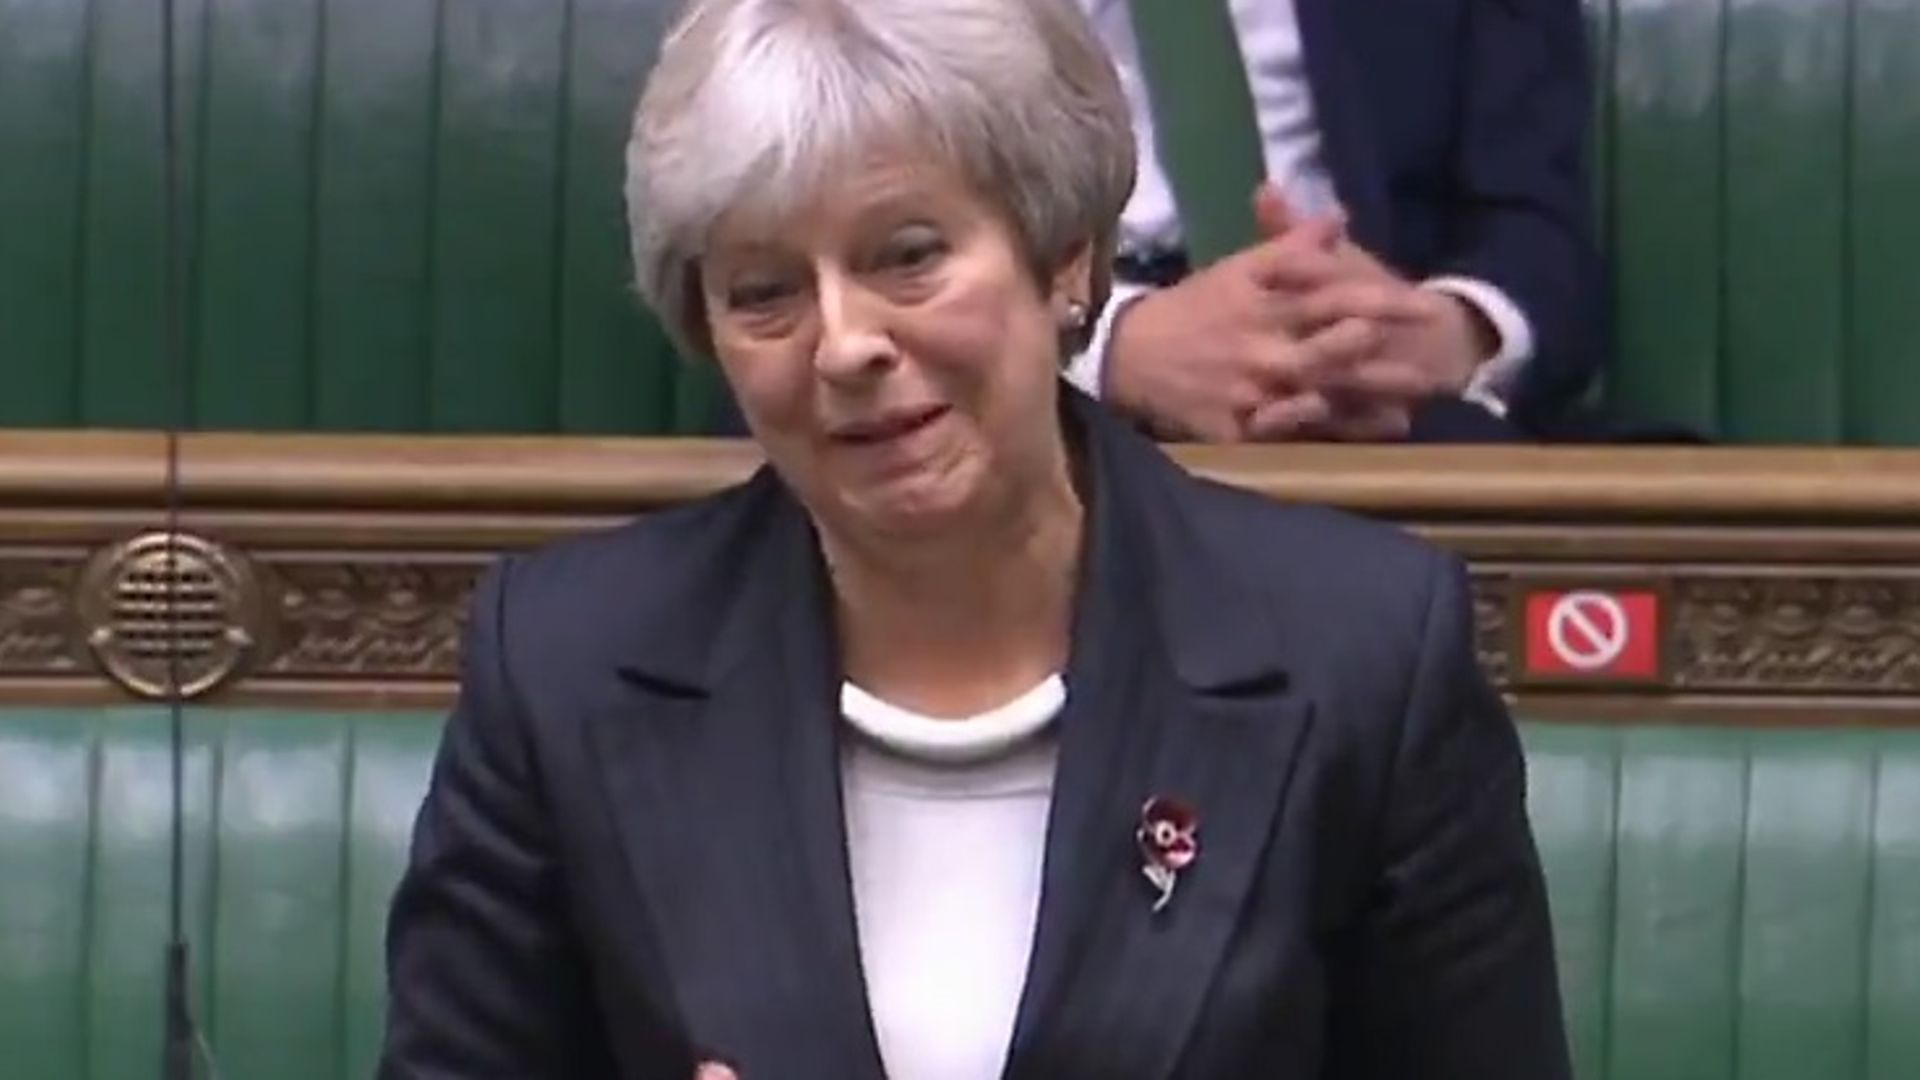 Theresa May in the House of Commons - Credit: Parliament Live